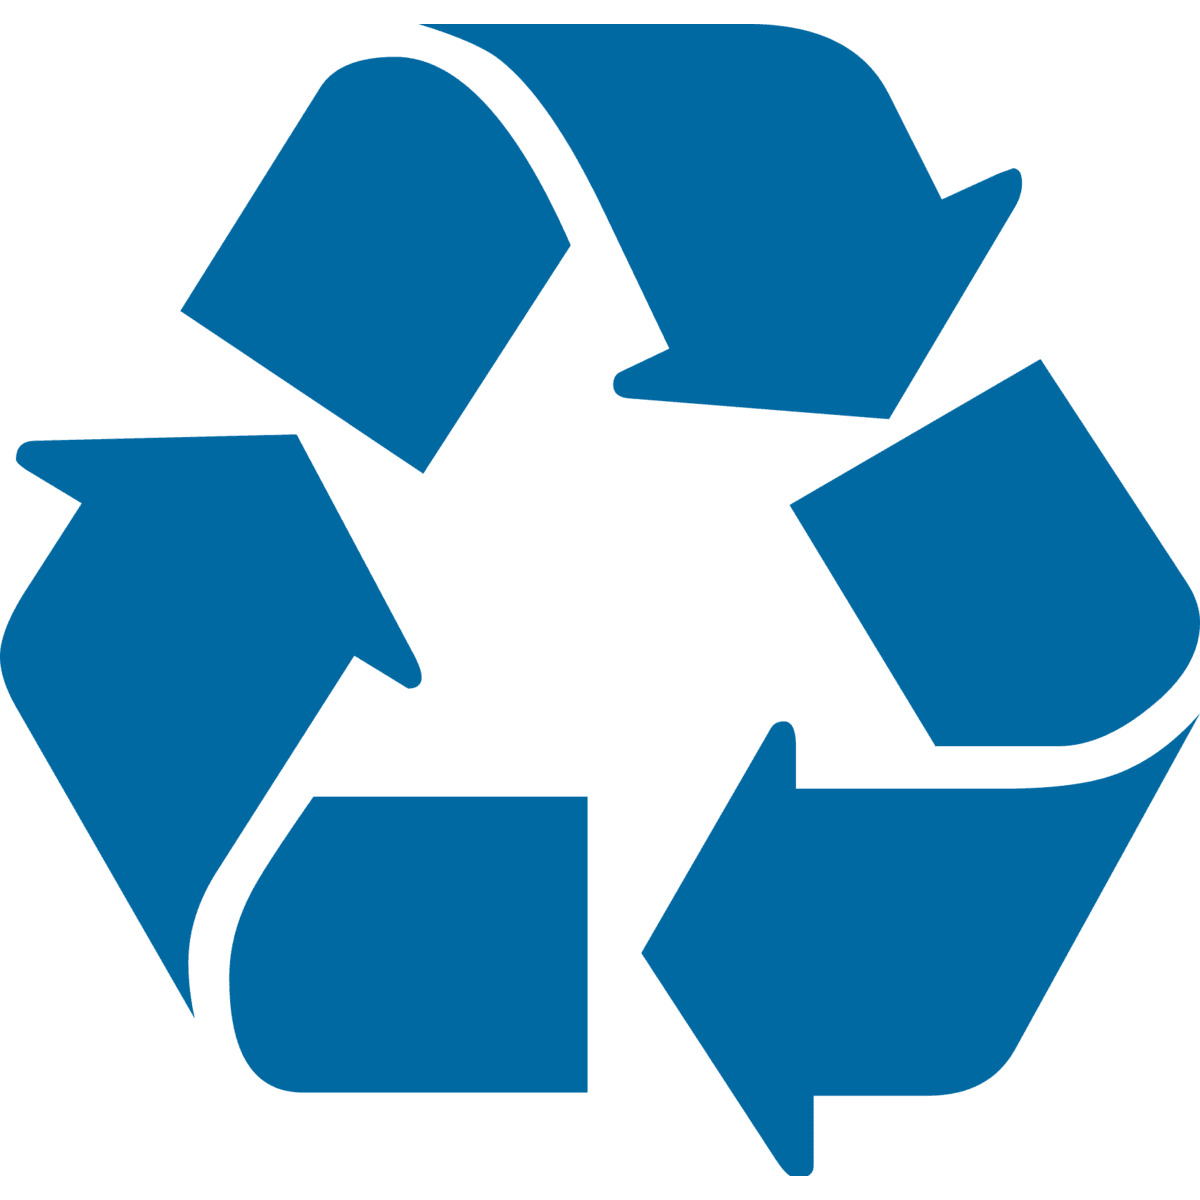 Recycle Logo Symbol Recycling Bin Free Download Image PNG Image